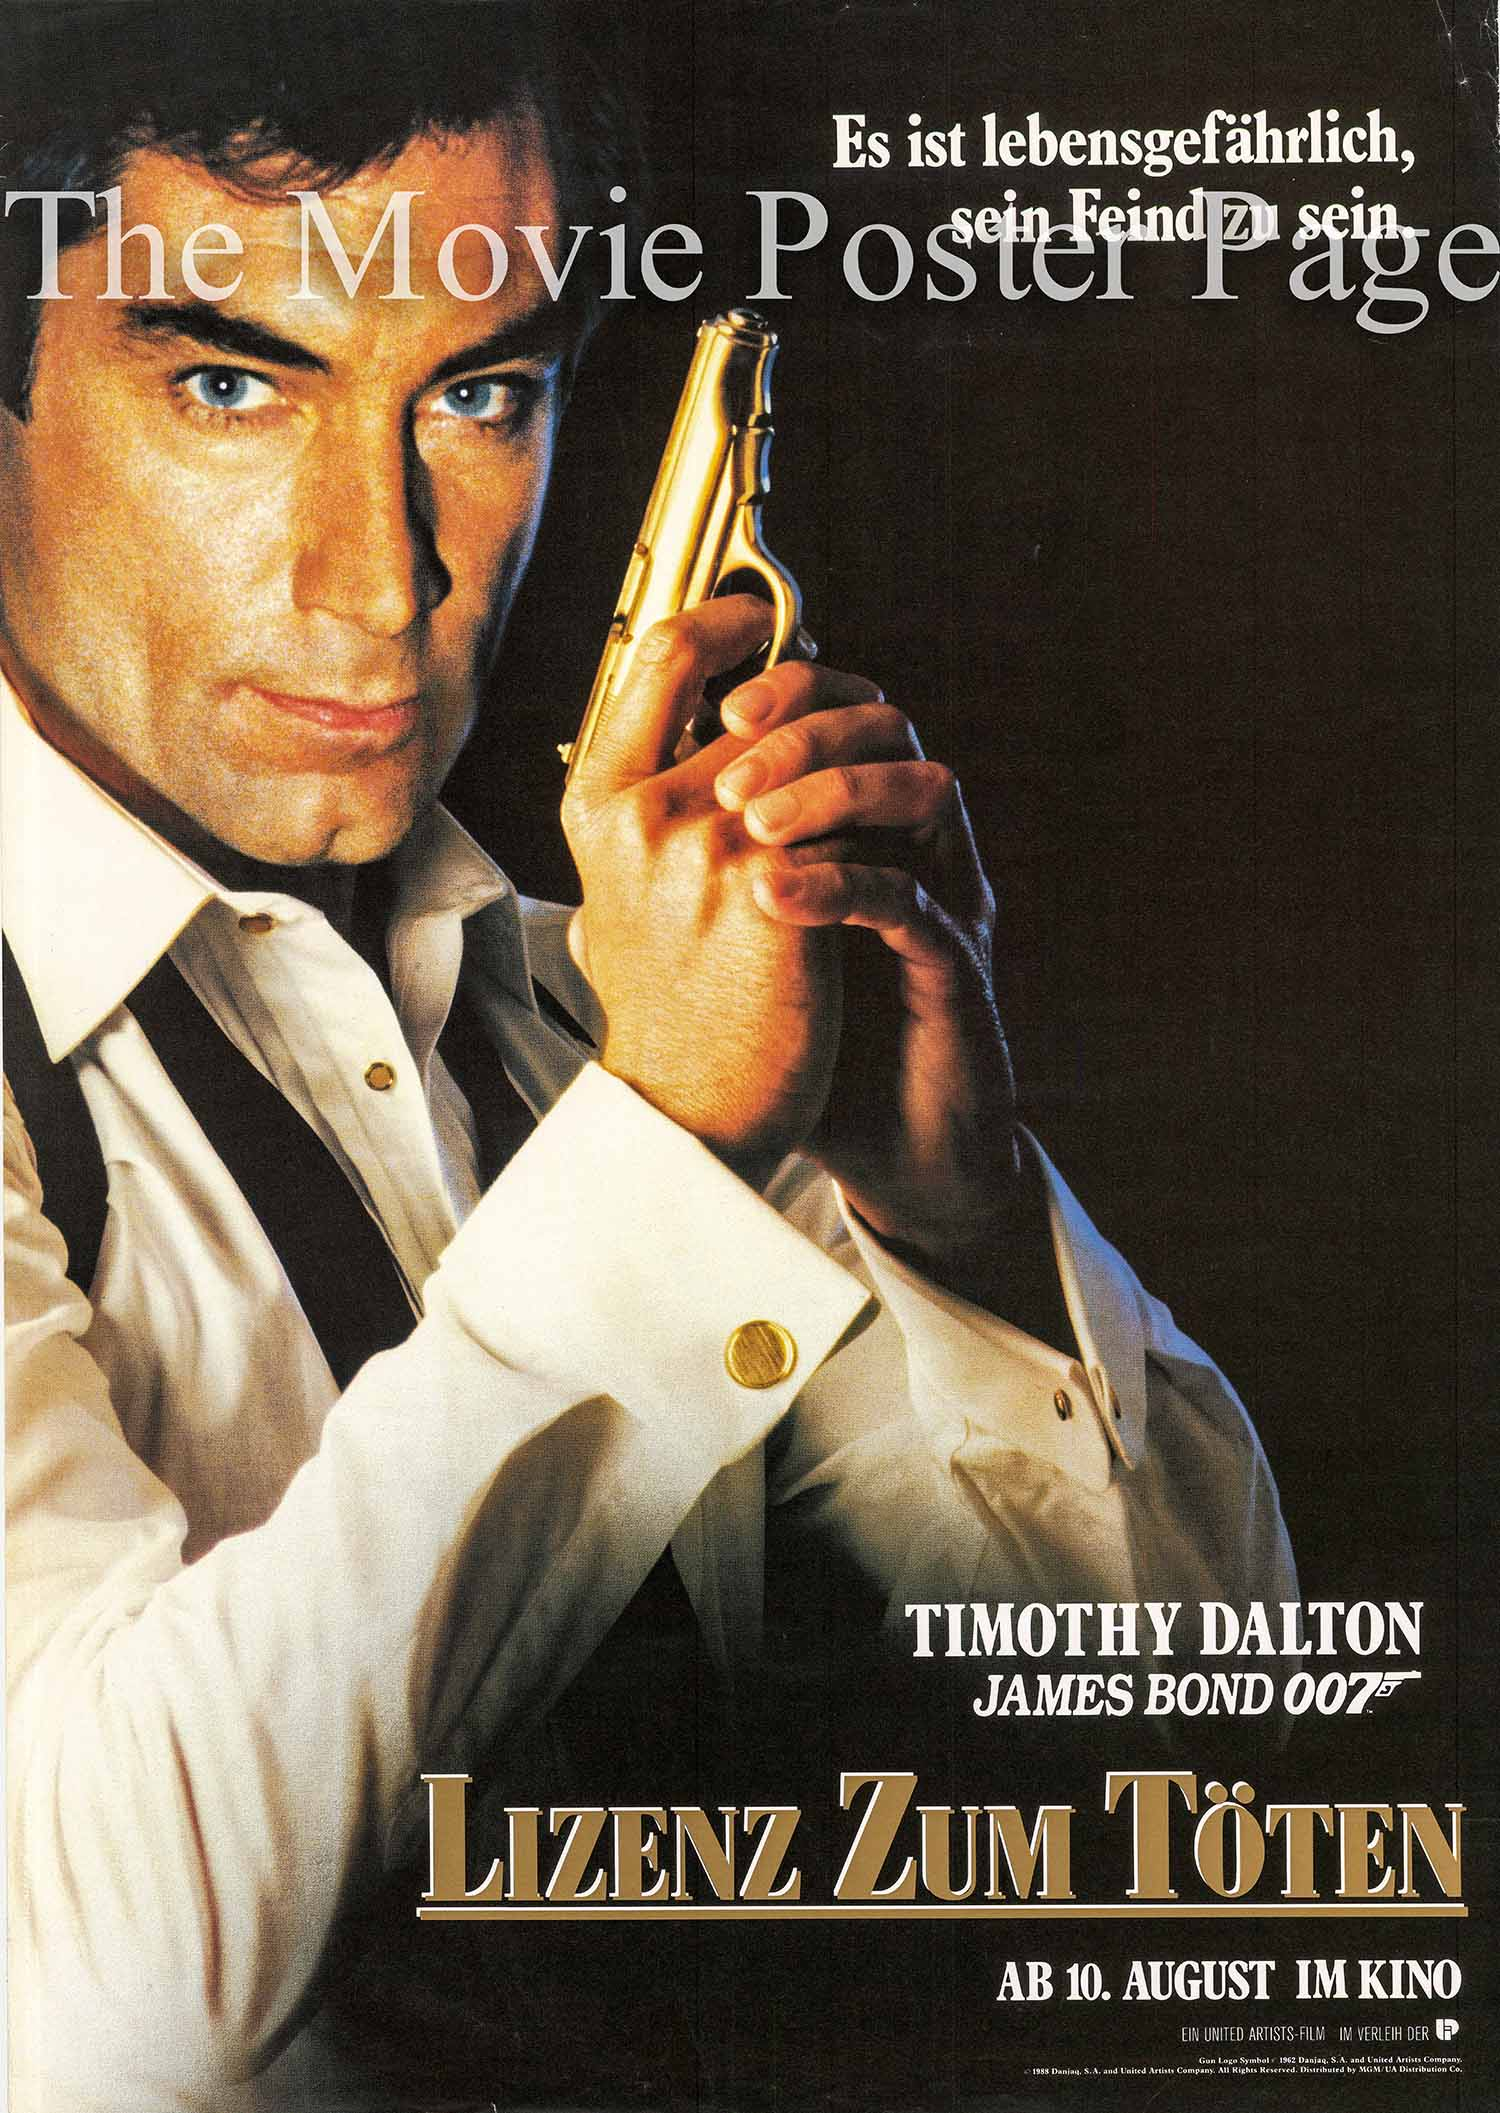 Pictured is a German one-sheet promotional poster for the 1989 John Glen James Bond film License to Kill, starring Timothy Dalton.